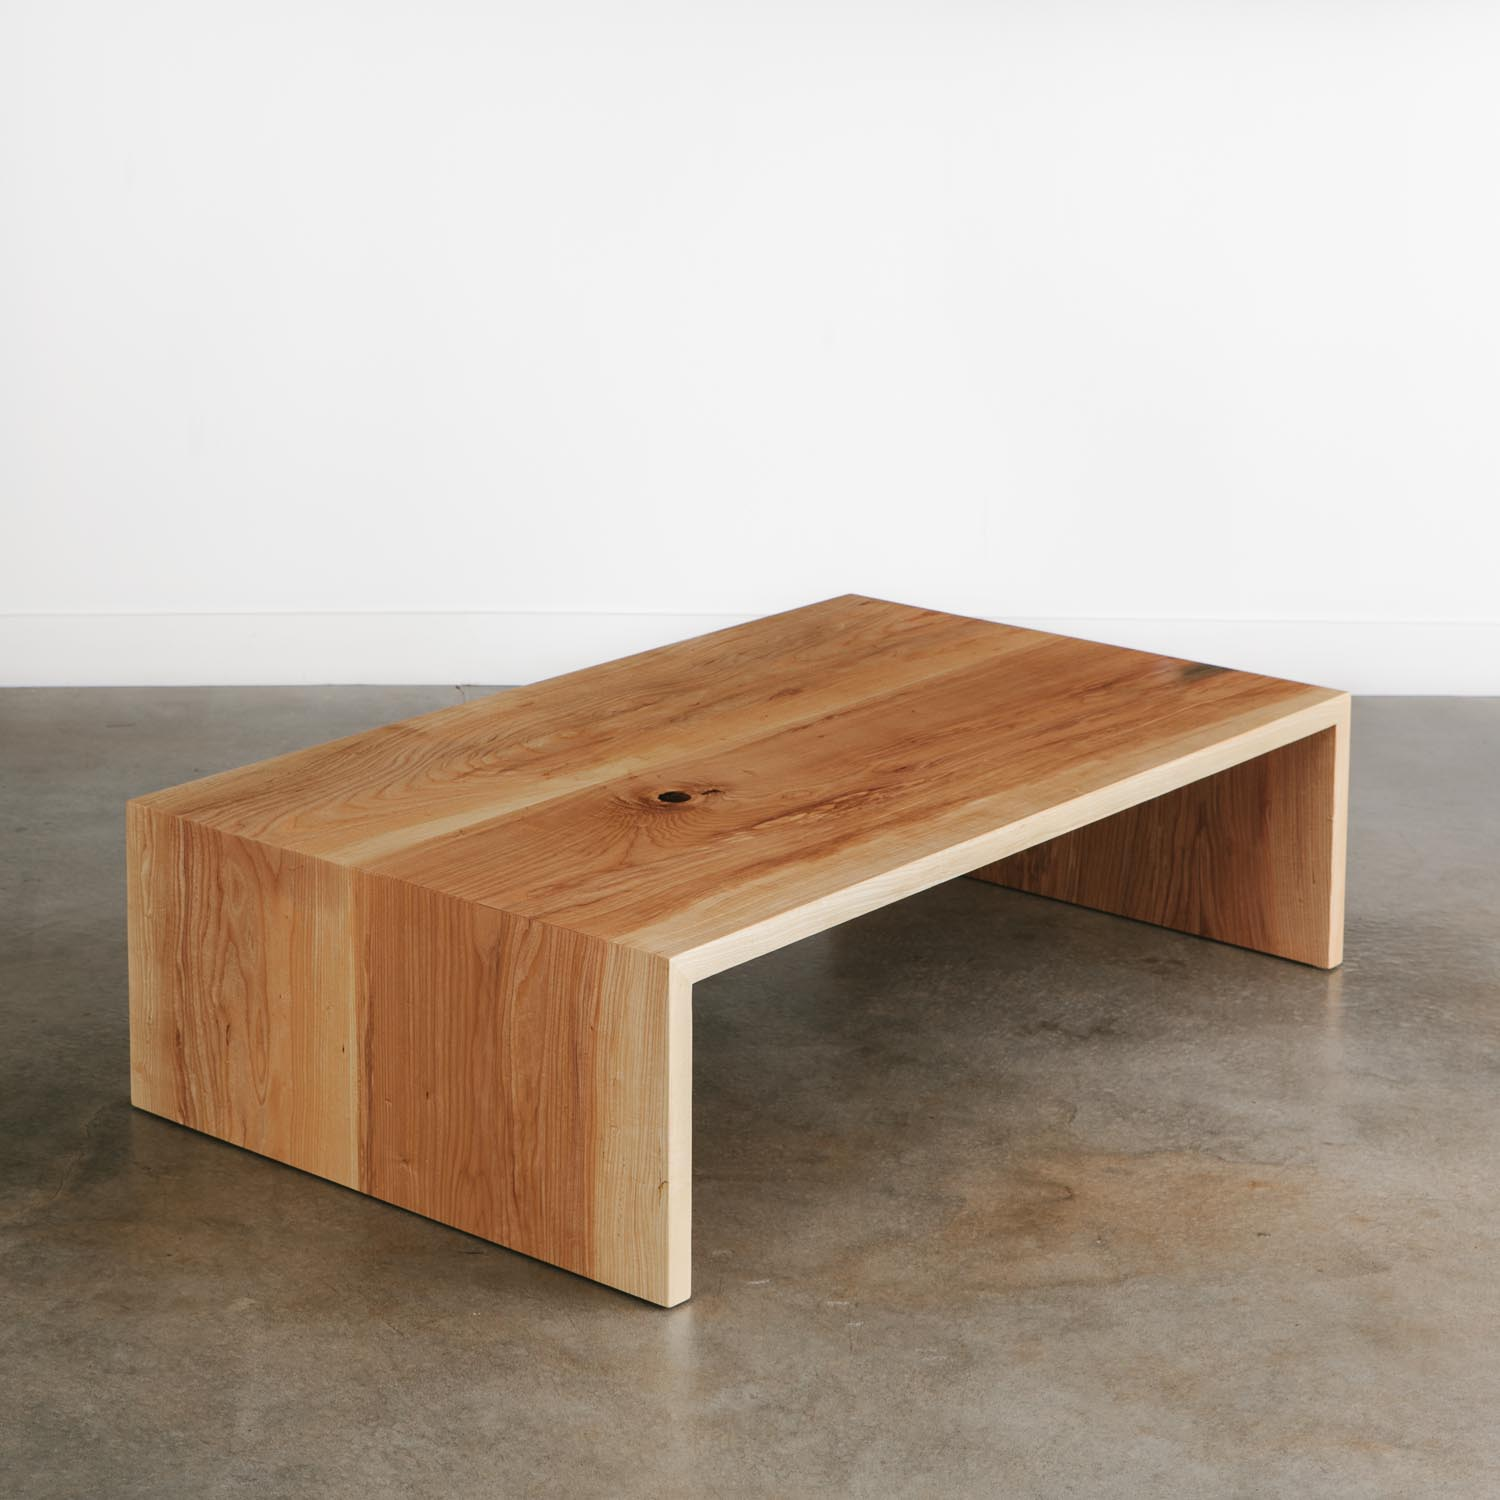 Ash coffee table elko hardwoods modern live edge furniture dining coffee tables desks benches